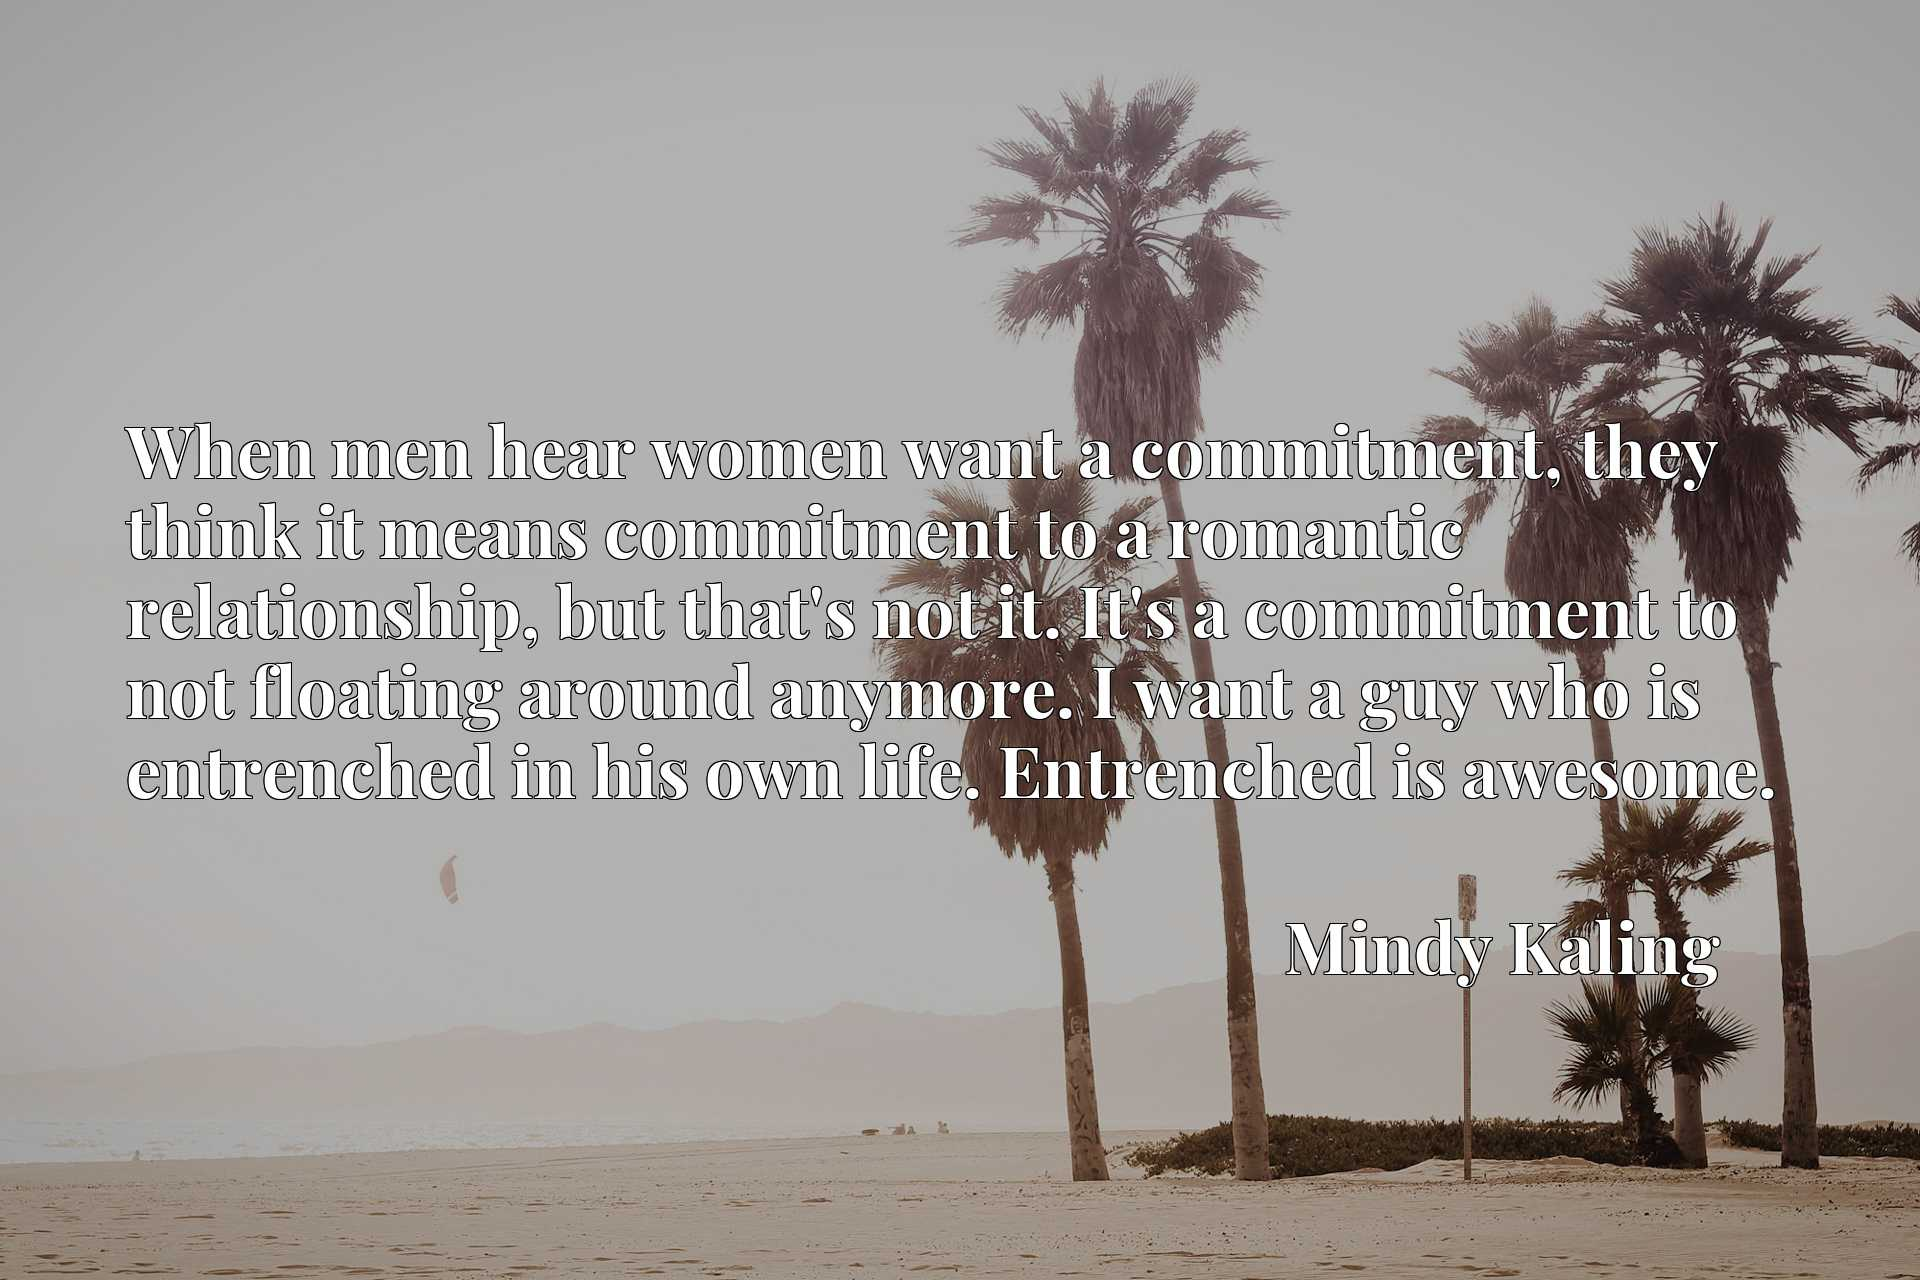 When men hear women want a commitment, they think it means commitment to a romantic relationship, but that's not it. It's a commitment to not floating around anymore. I want a guy who is entrenched in his own life. Entrenched is awesome.